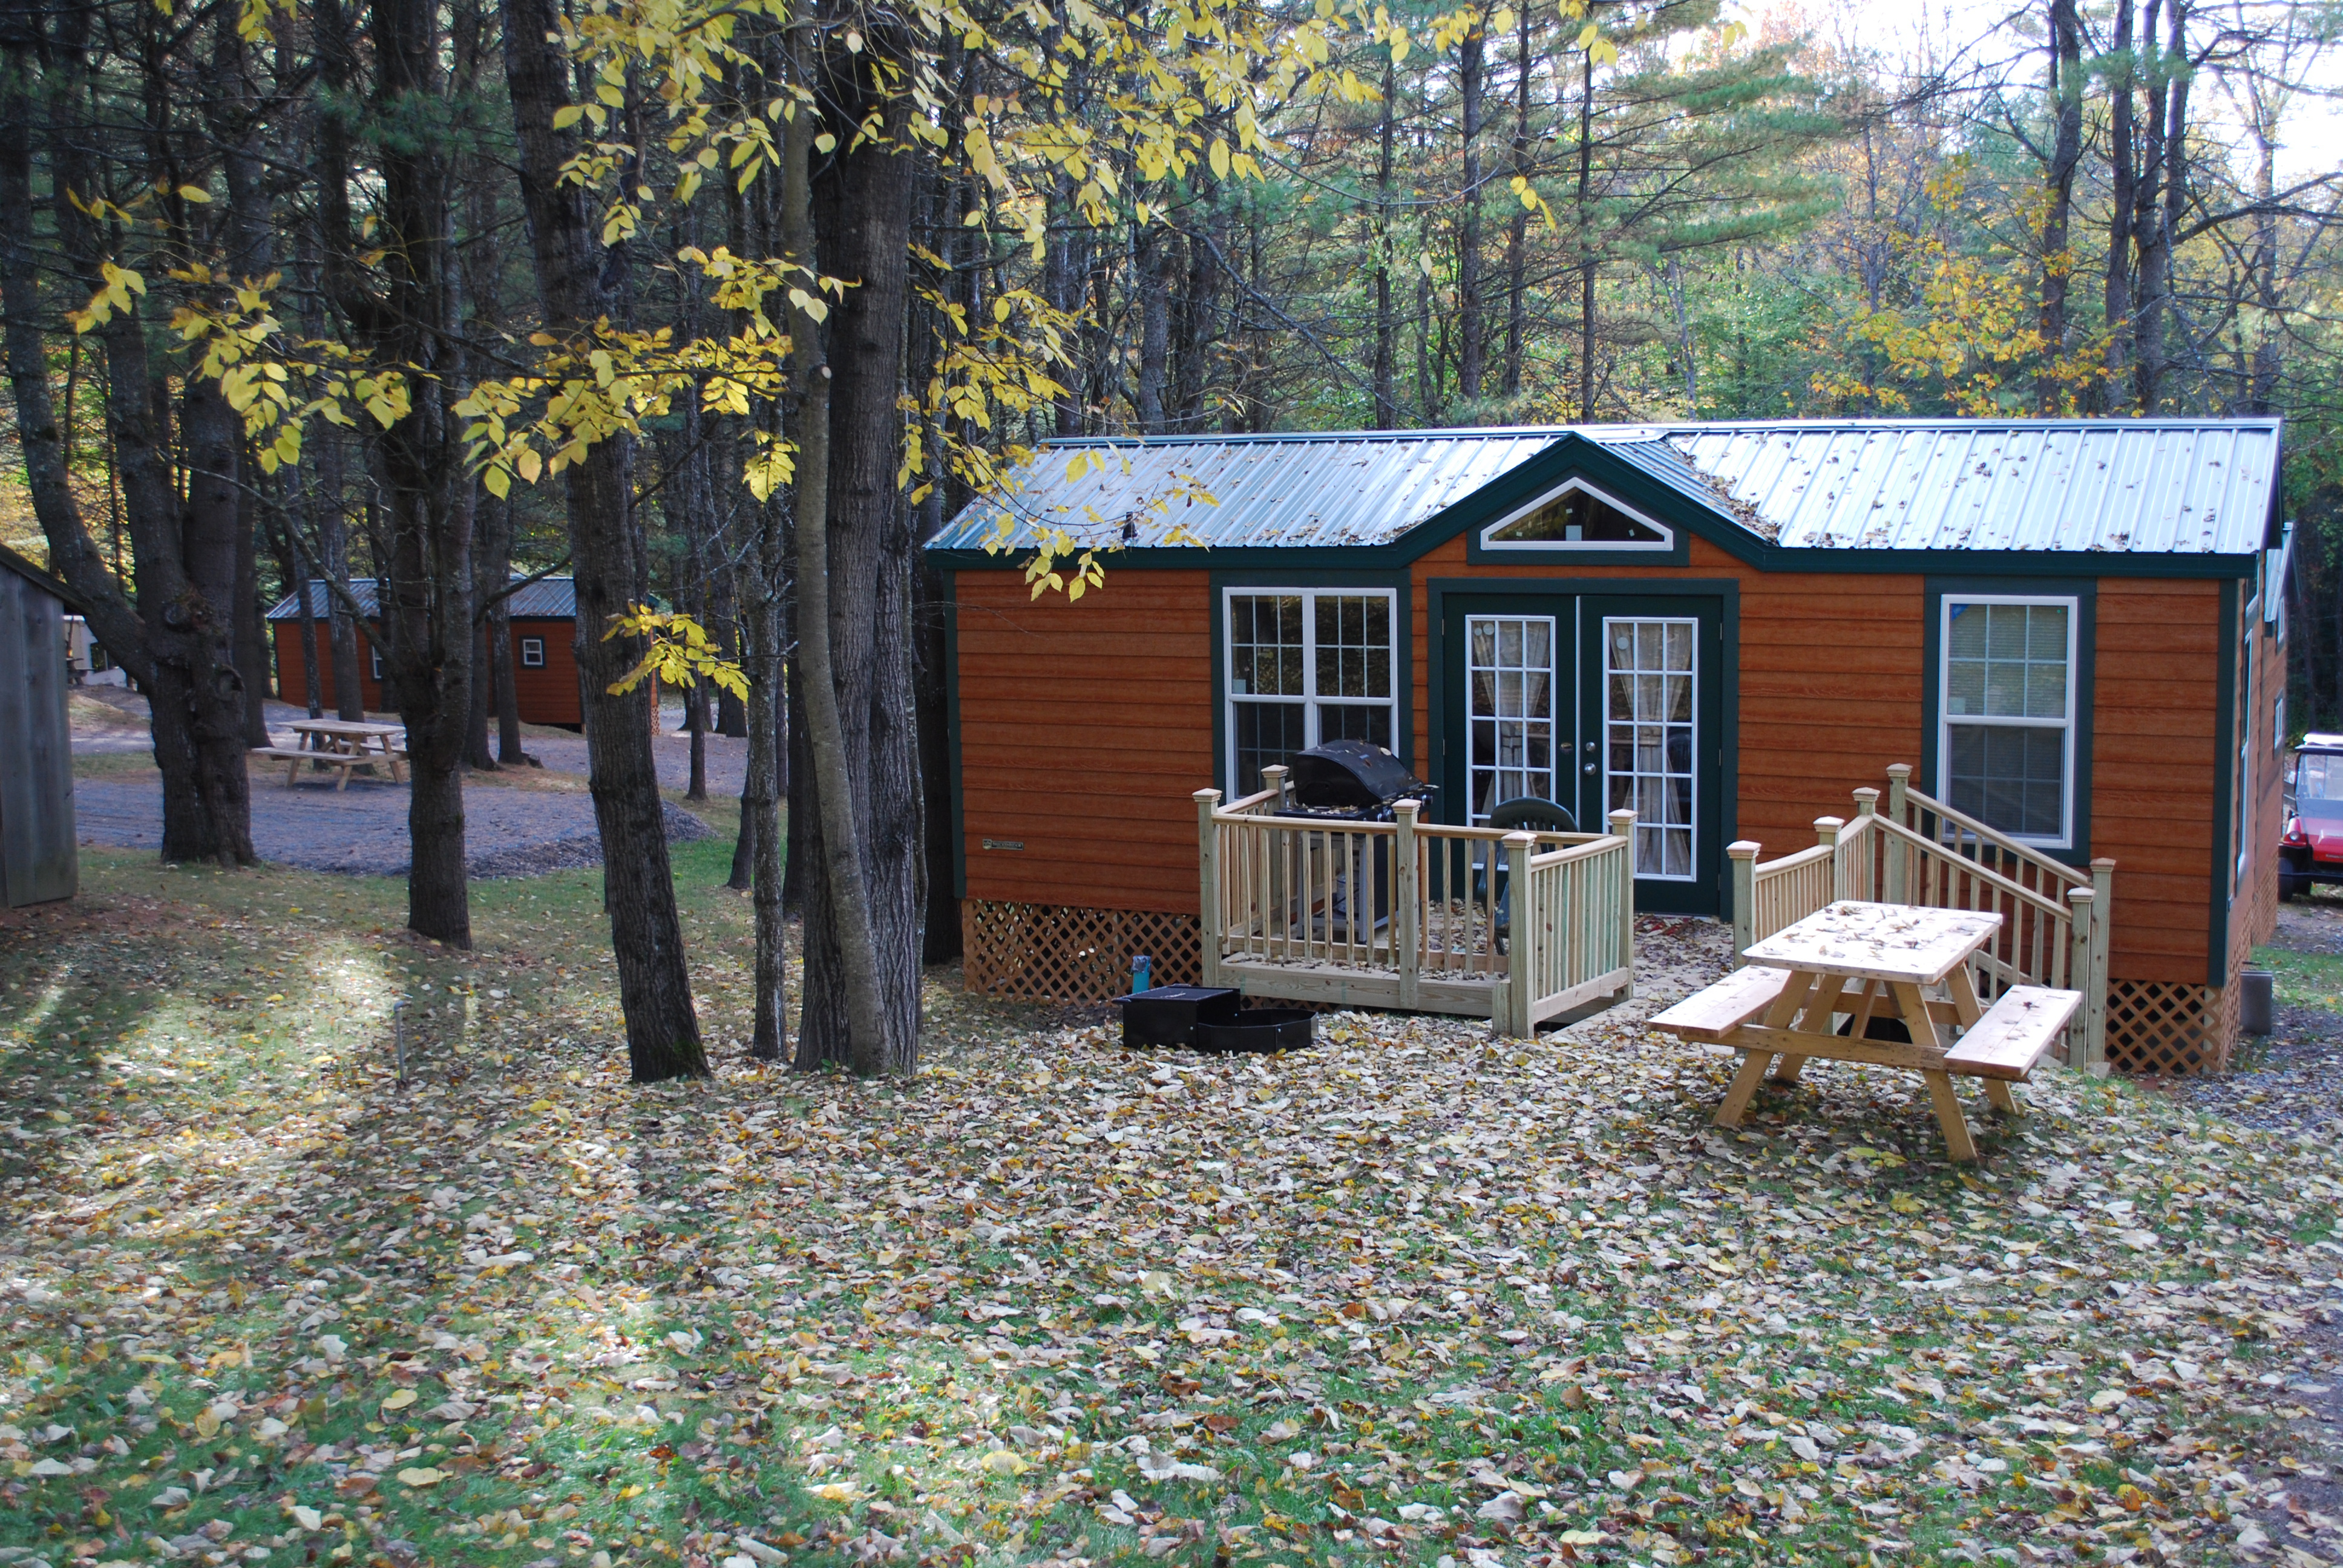 hollow cabin tools stowe cabins vermont rentals goldilocks vt road little listing